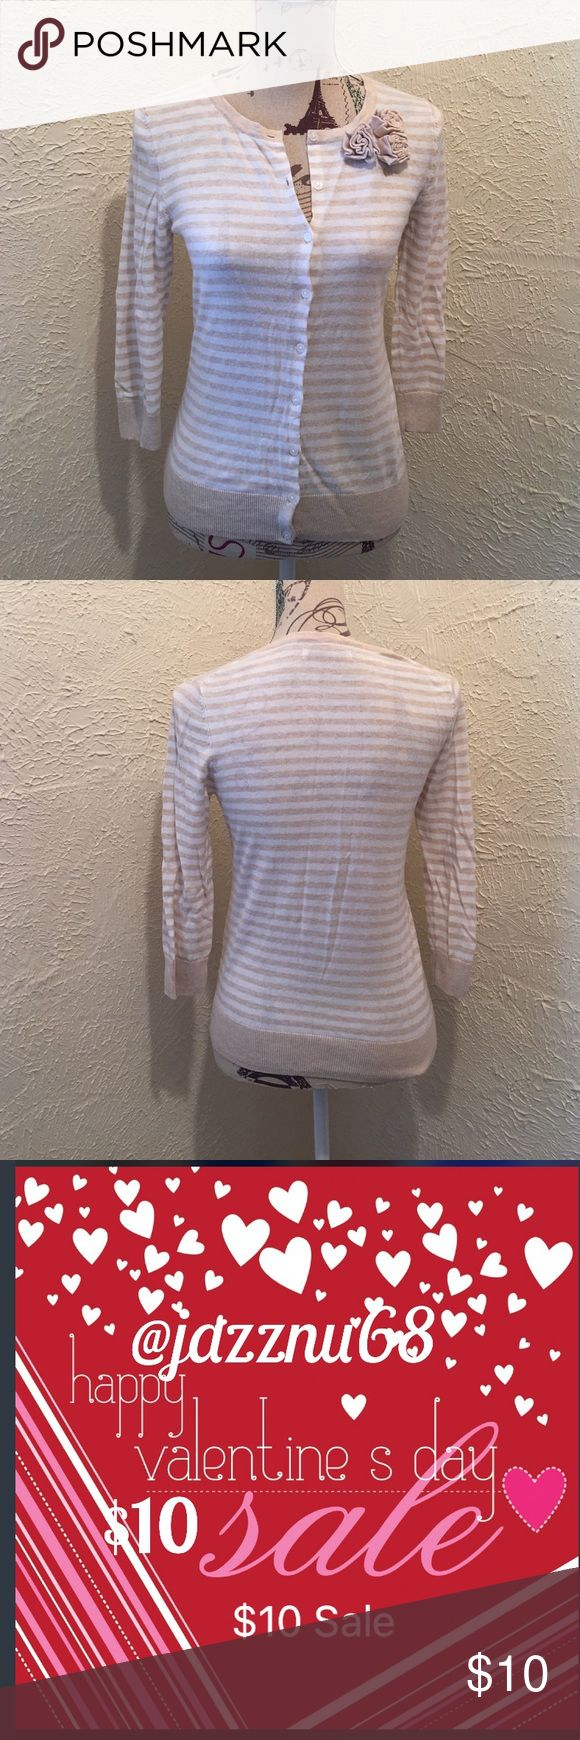 💋🌹Old Navy•Striped•Cardigan Old Navy•Striped•Cardigan~ Great Condition oatmeal and creme striped with floral rosettes Old Navy Sweaters Cardigans